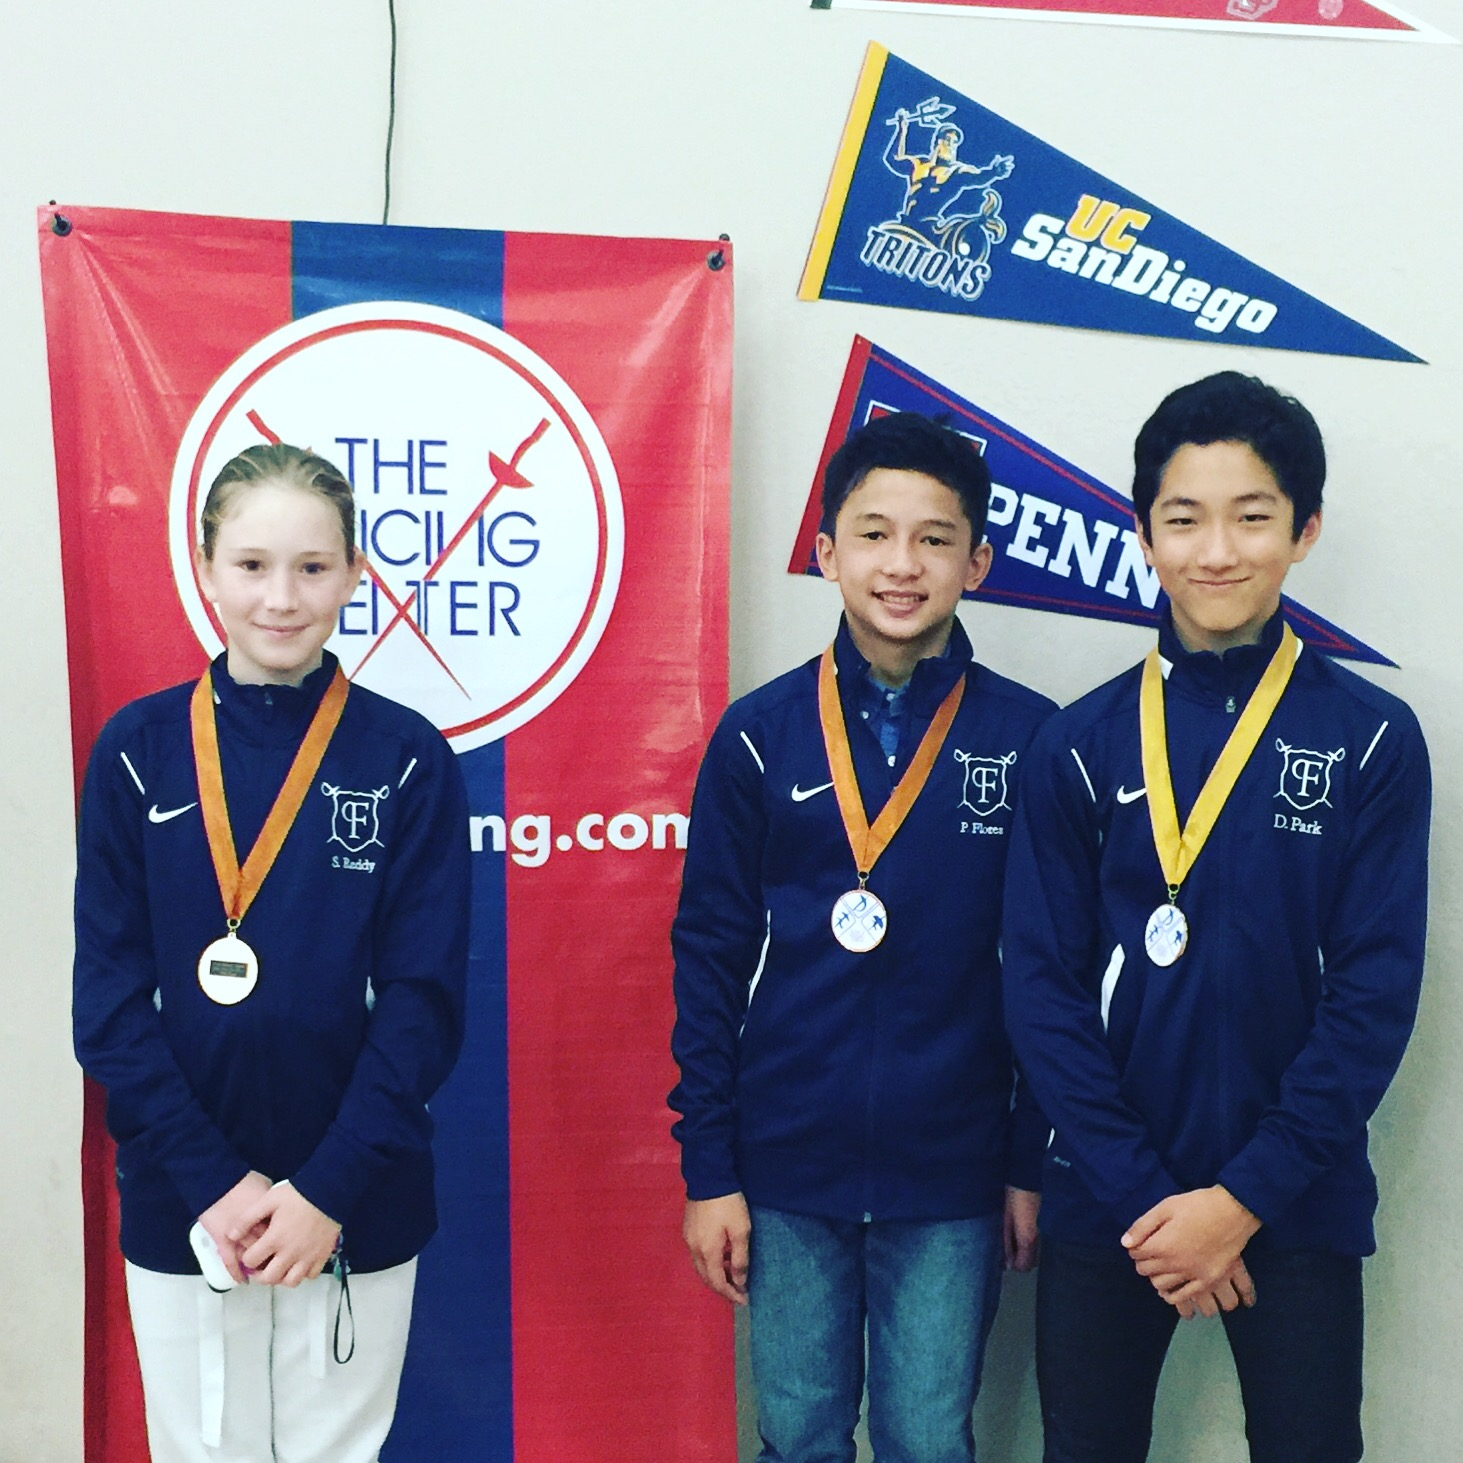 Donghwan 1st, Peter 3rd and Nicole 5th